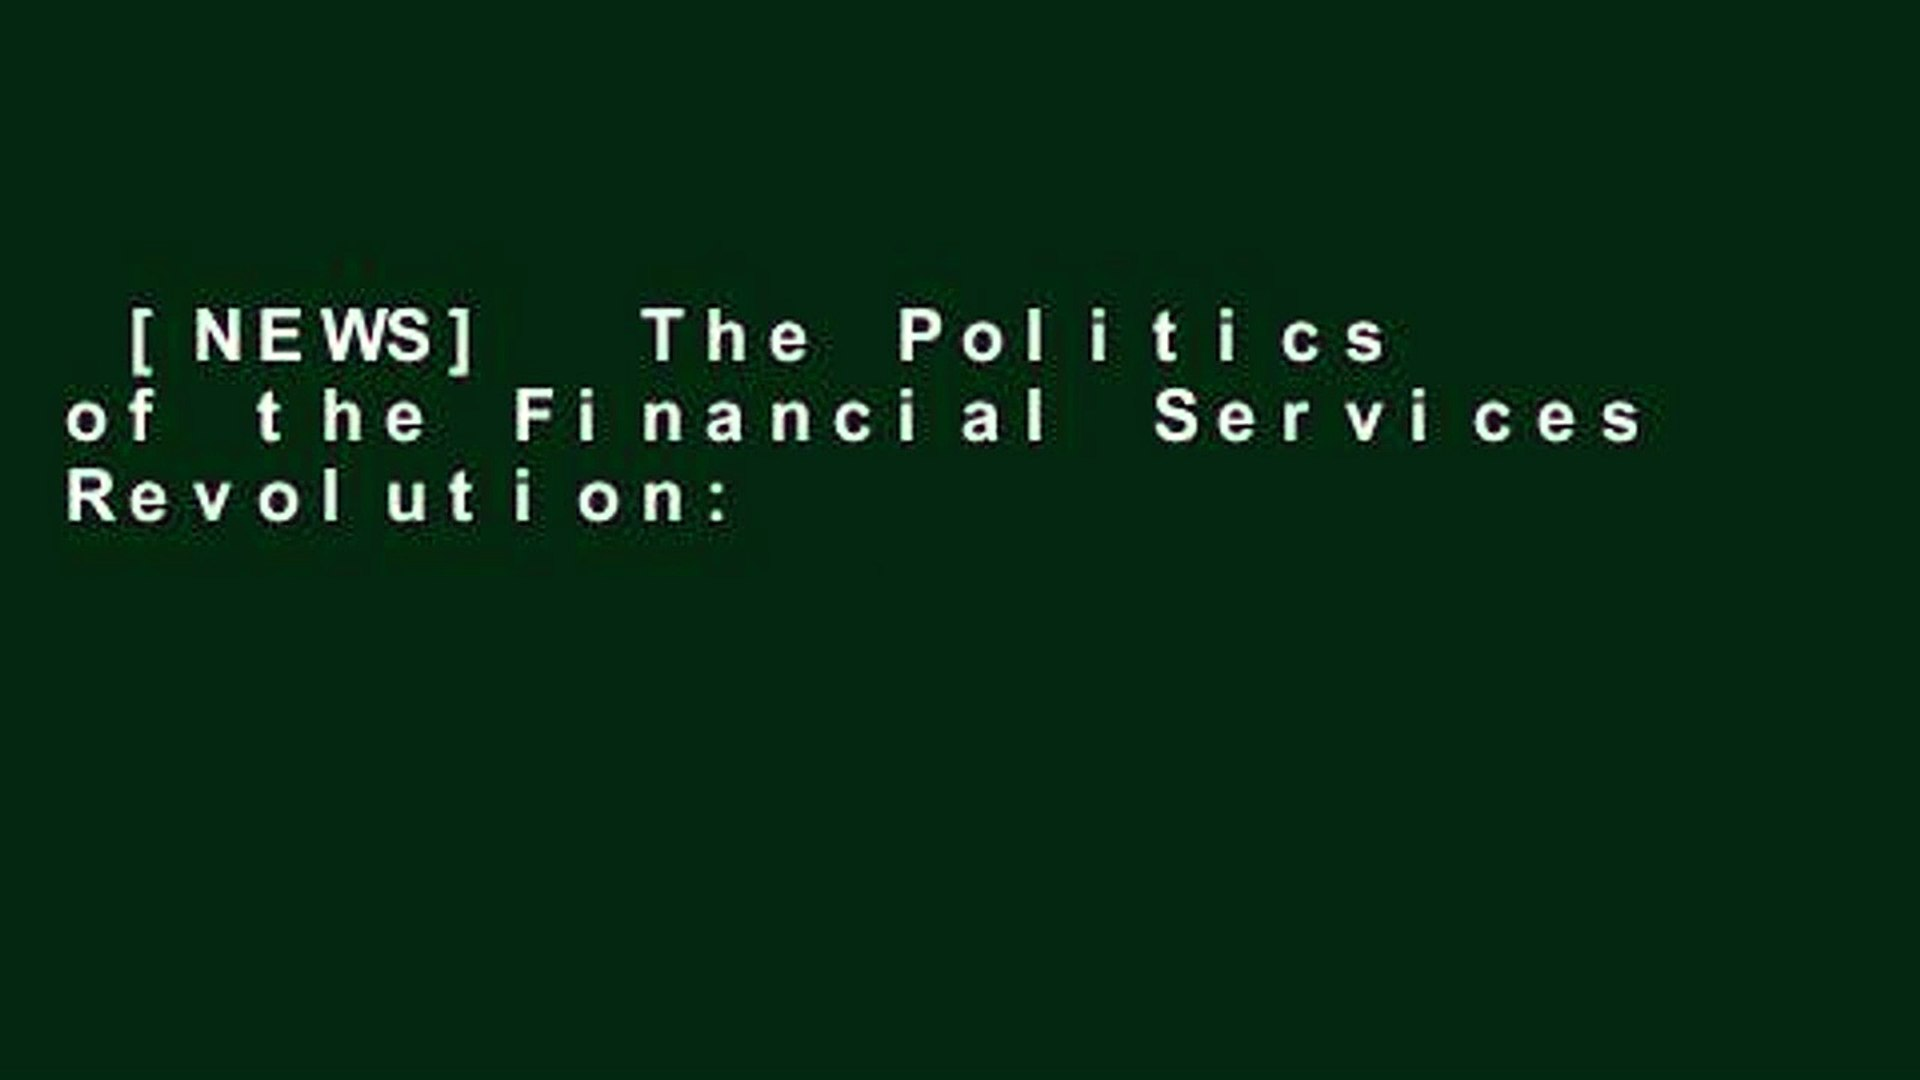 [NEWS]  The Politics of the Financial Services Revolution: The Usa, UK and